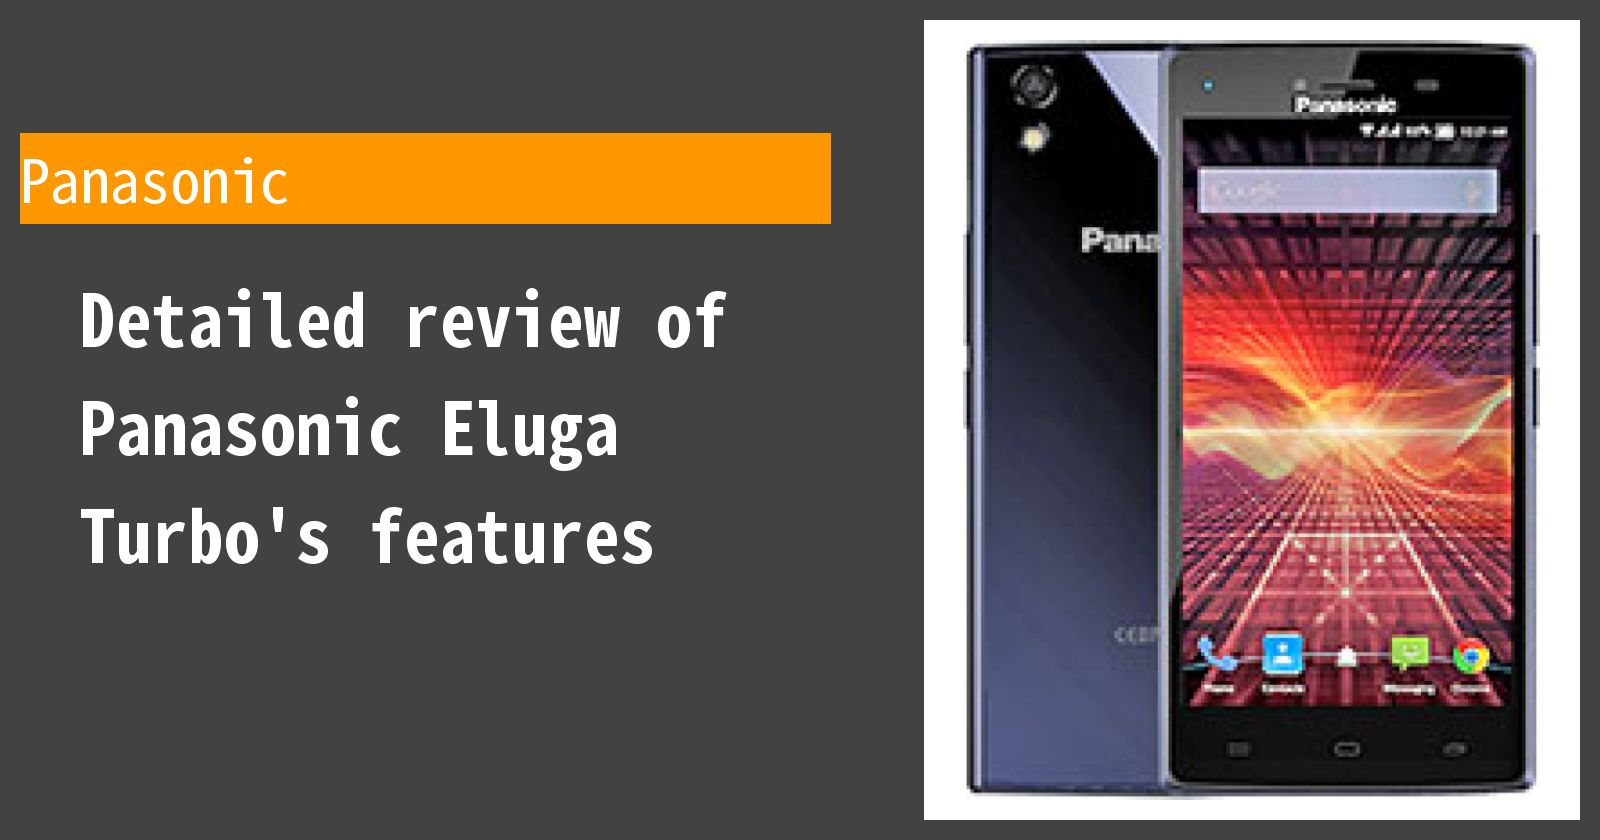 Detailed review of Panasonic Eluga Turbo's features